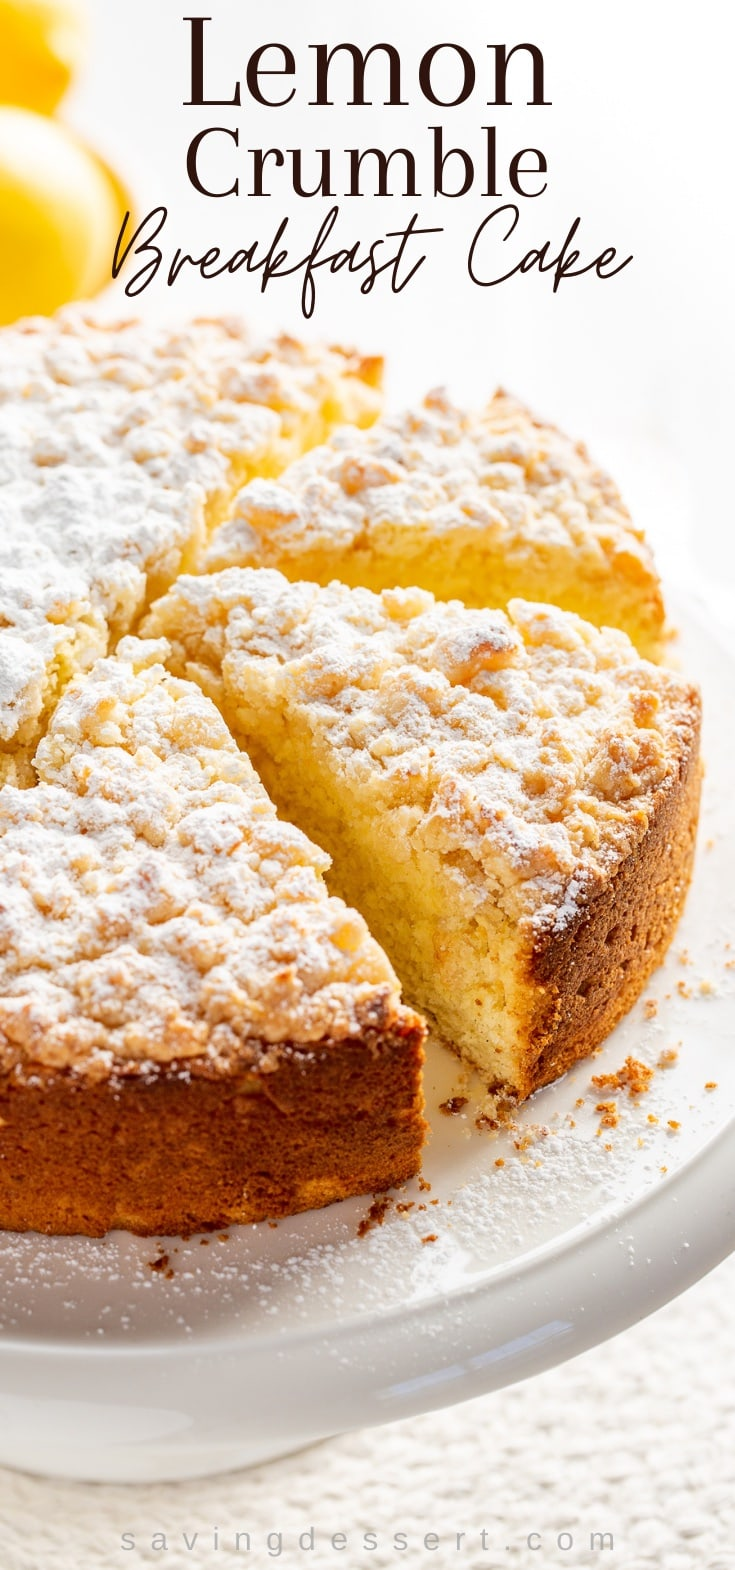 Photo of Lemon Crumble Breakfast Cake